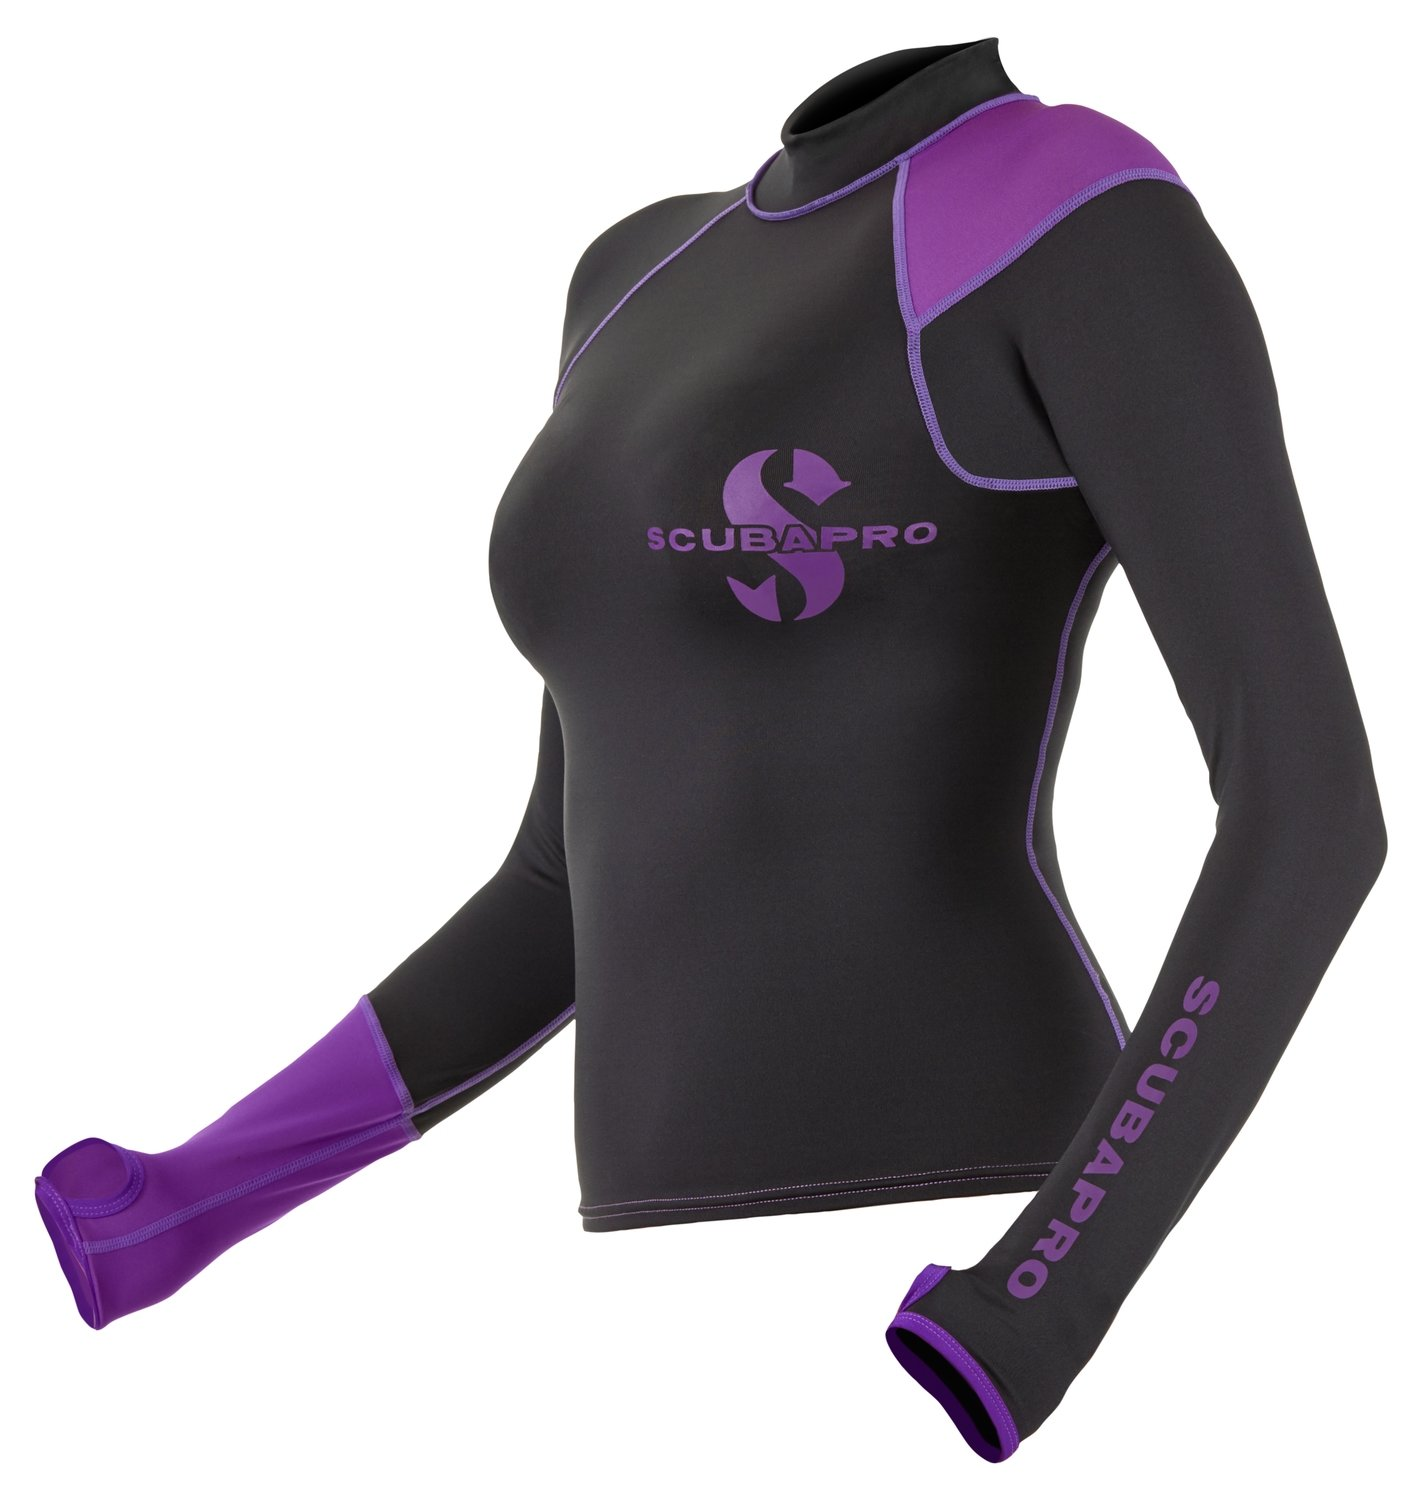 Economy Black Rash Guard for Women, Long/Short Sleeve